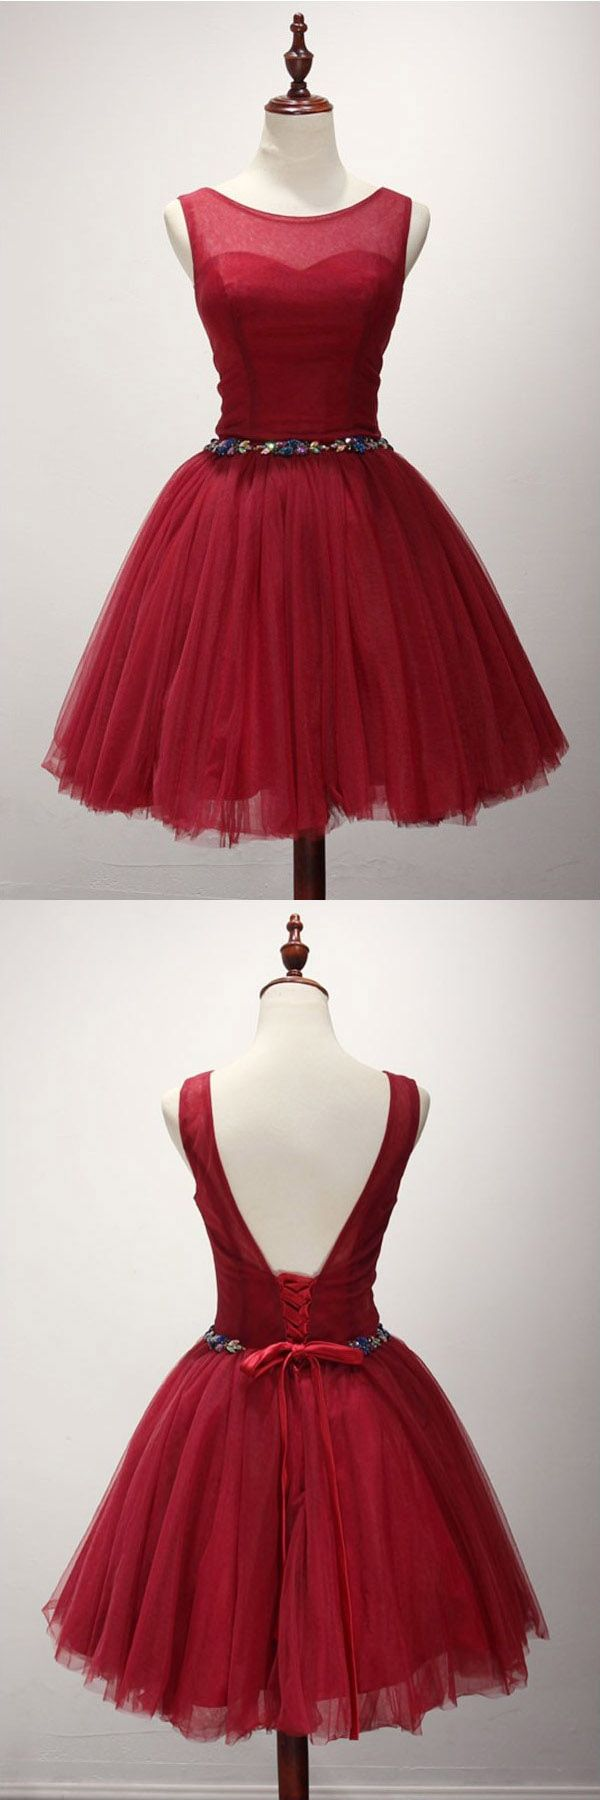 Ball Gown Scoop Neck Short Tulle Homecoming Dress With Beading PG136